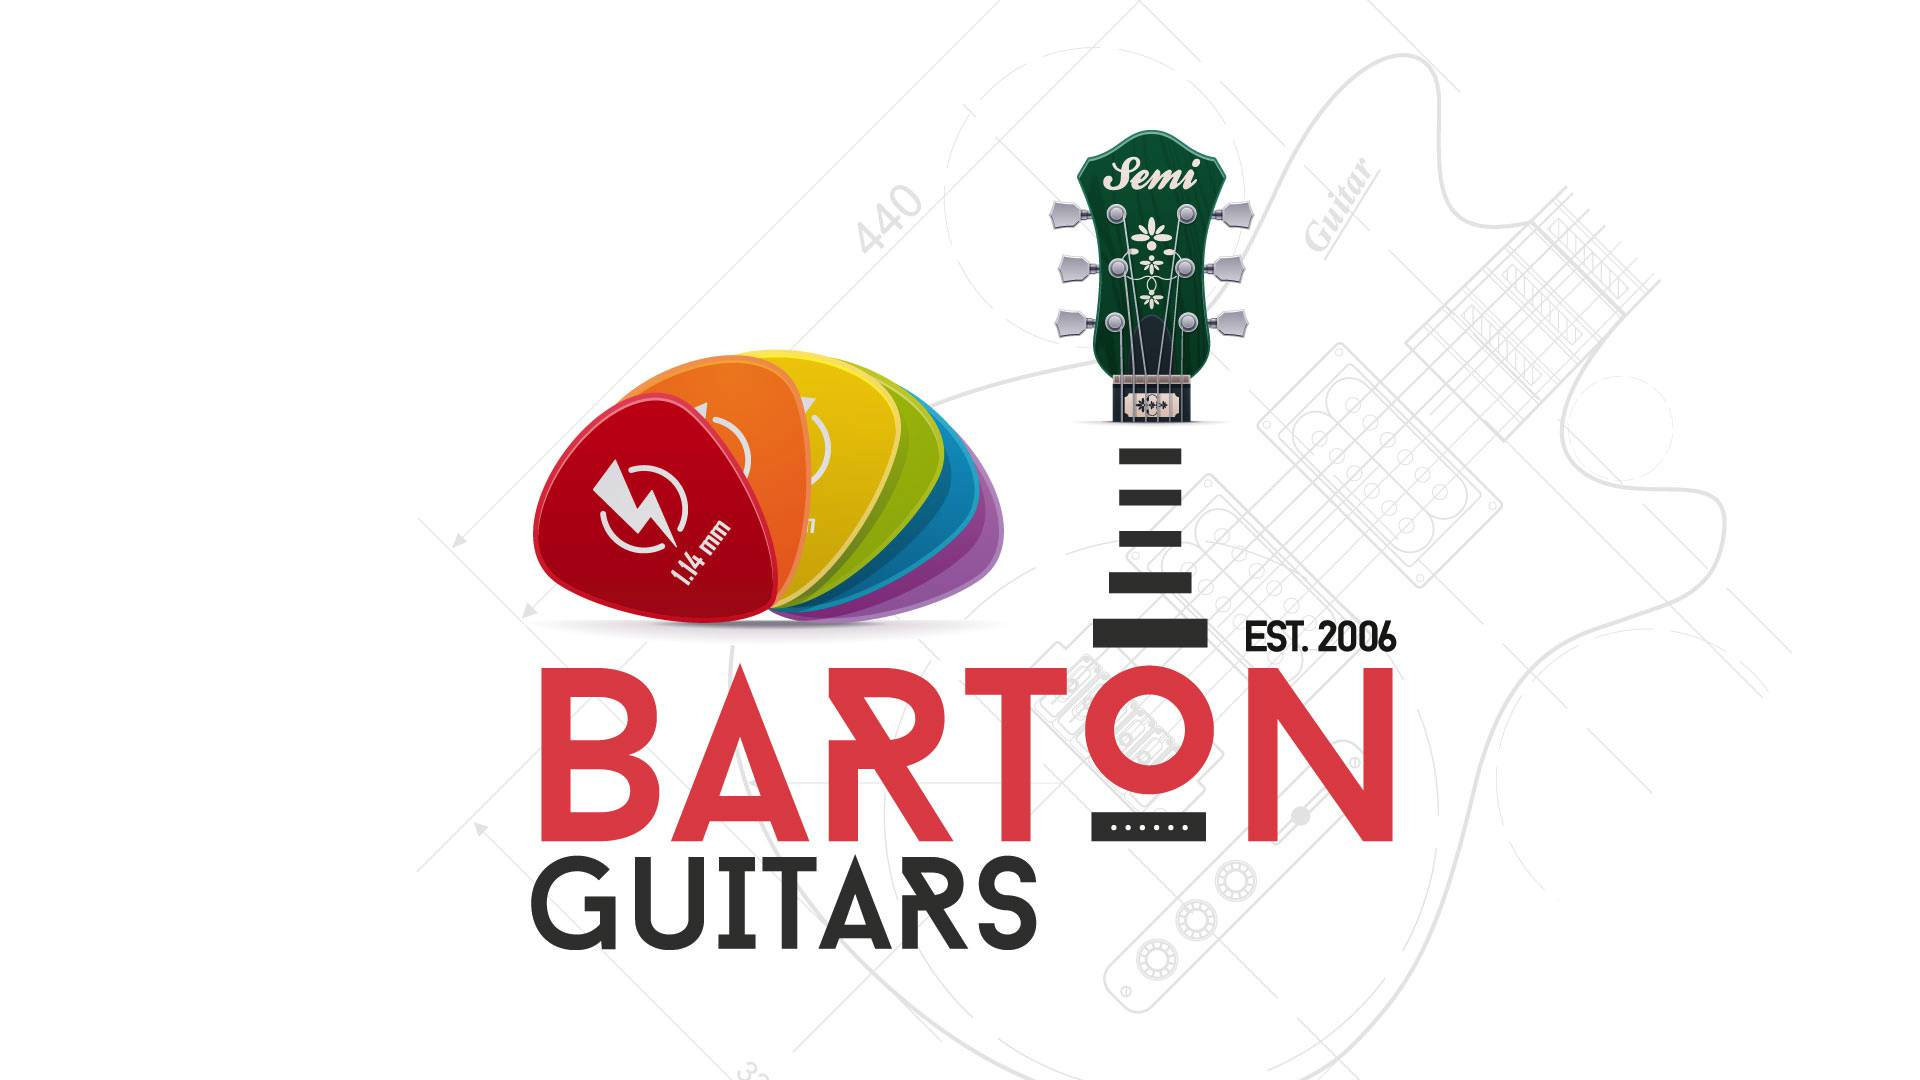 Who are barton guitars